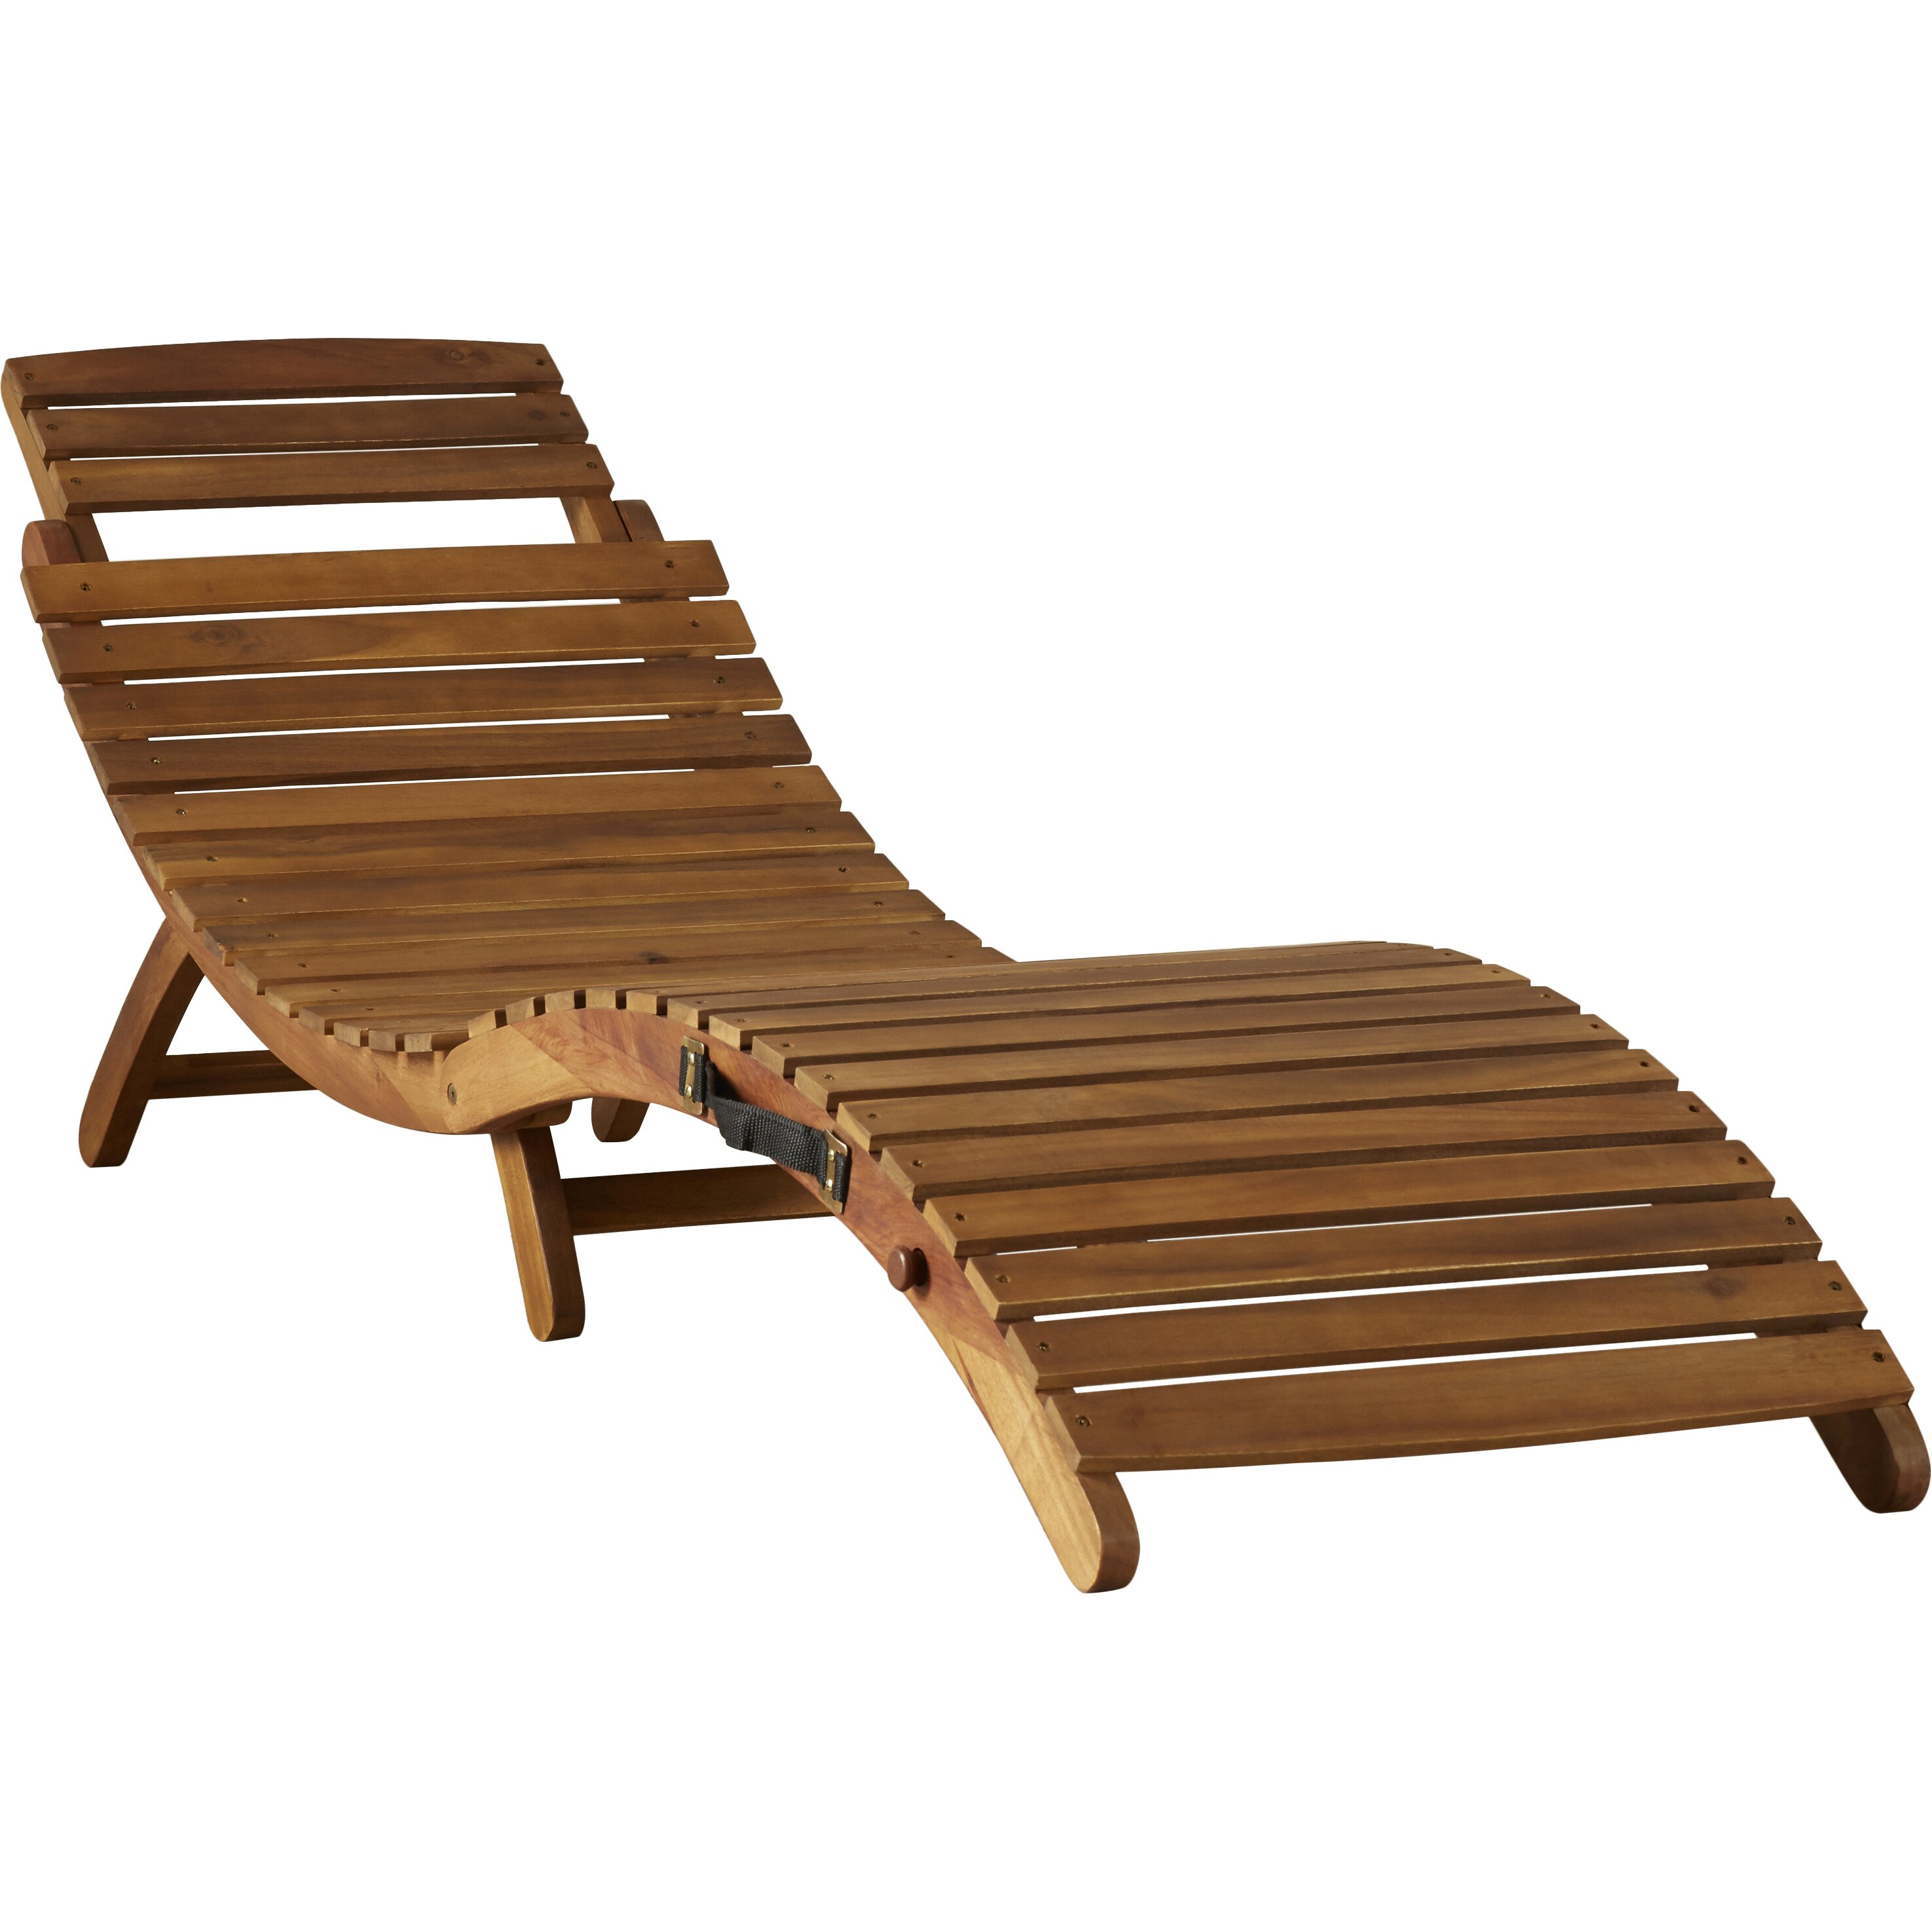 Bay isle home sanchezia chaise lounge reviews wayfair for Buy outdoor chaise lounge